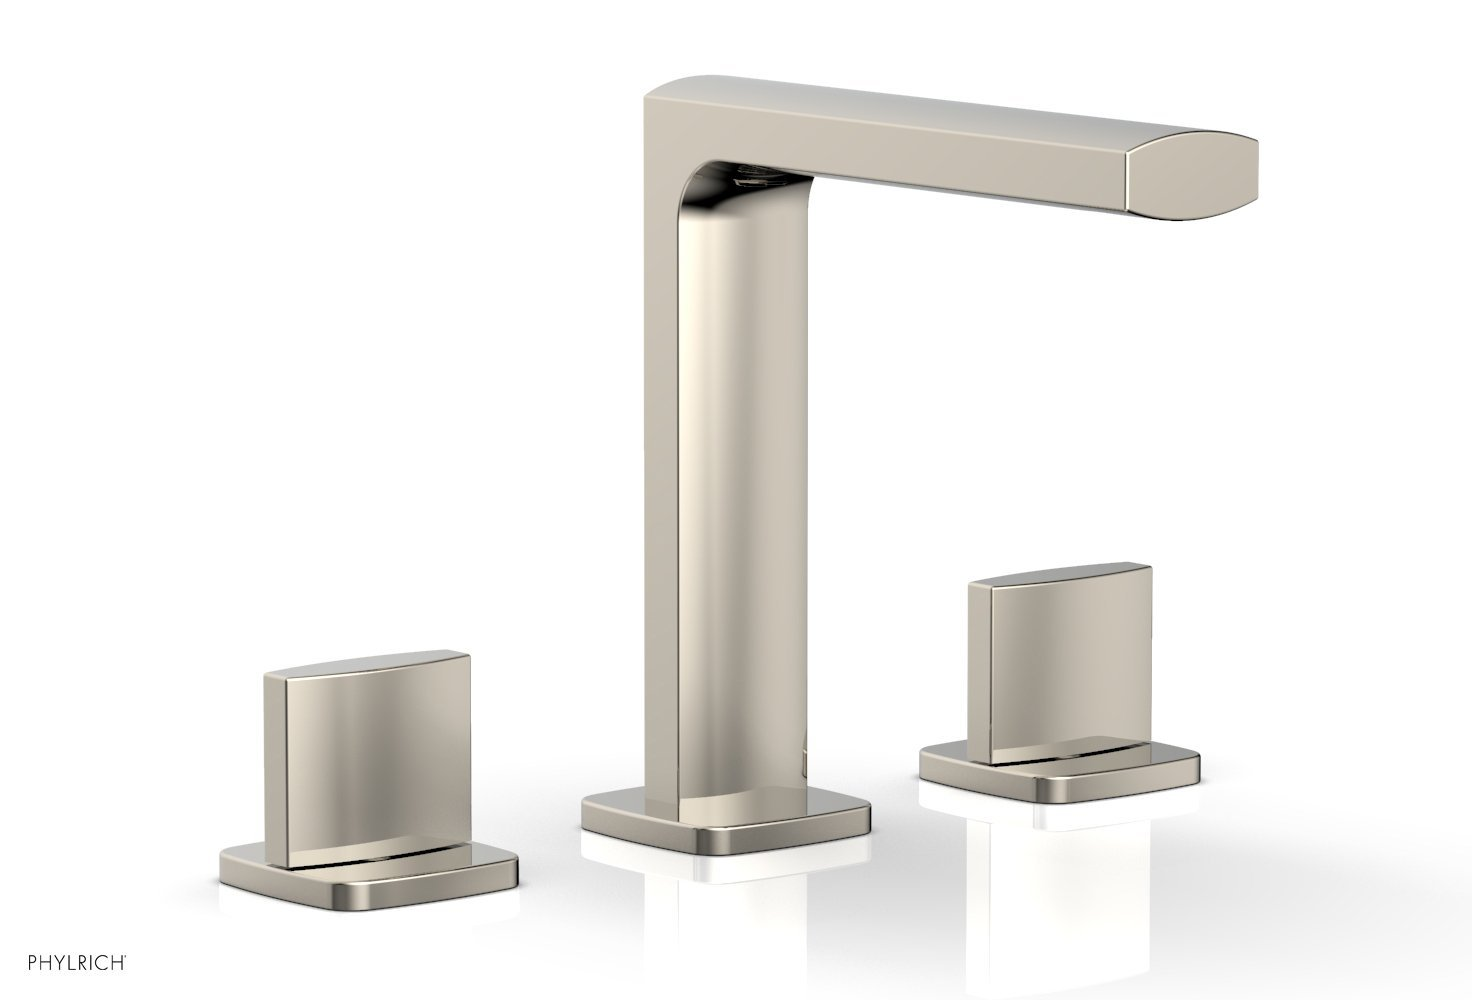 Phylrich 181-01-014 RADI Widespread Faucet - Blade Handle High Spout - Polished Nickel